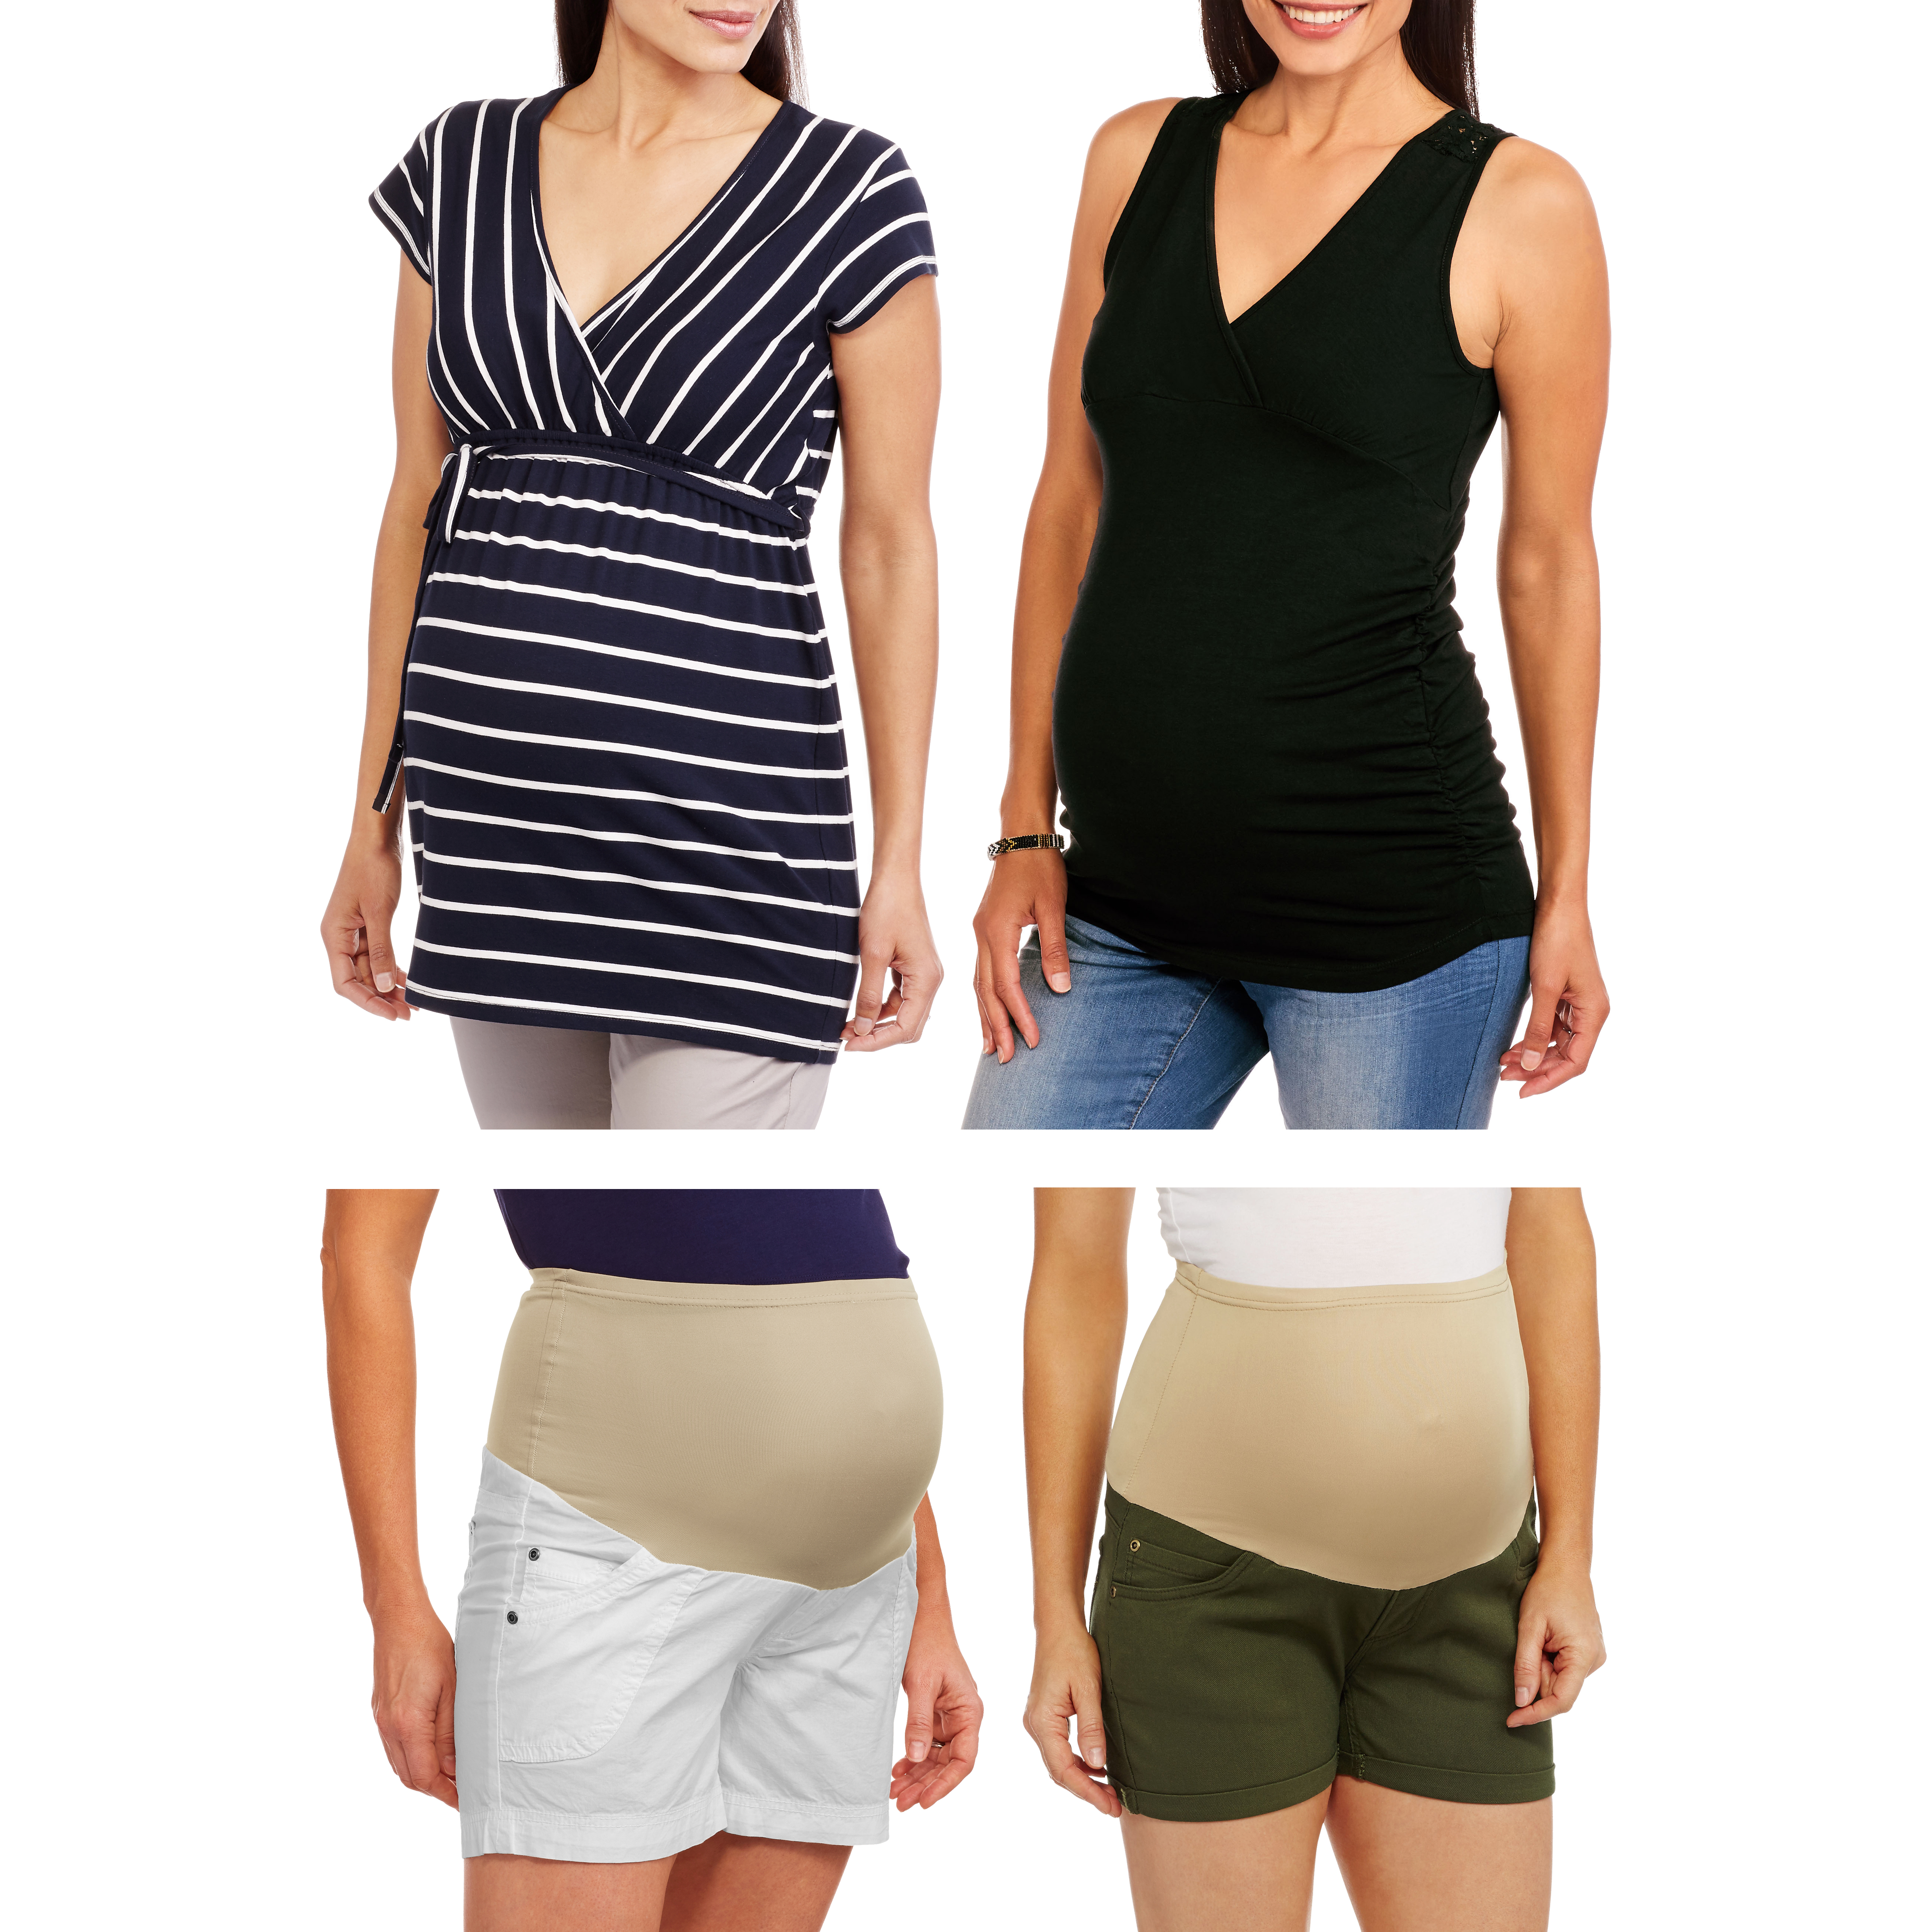 Oh! Mamma Maternity Surplice Top and Full Panel Woven Shorts Bundle - Your Choice!